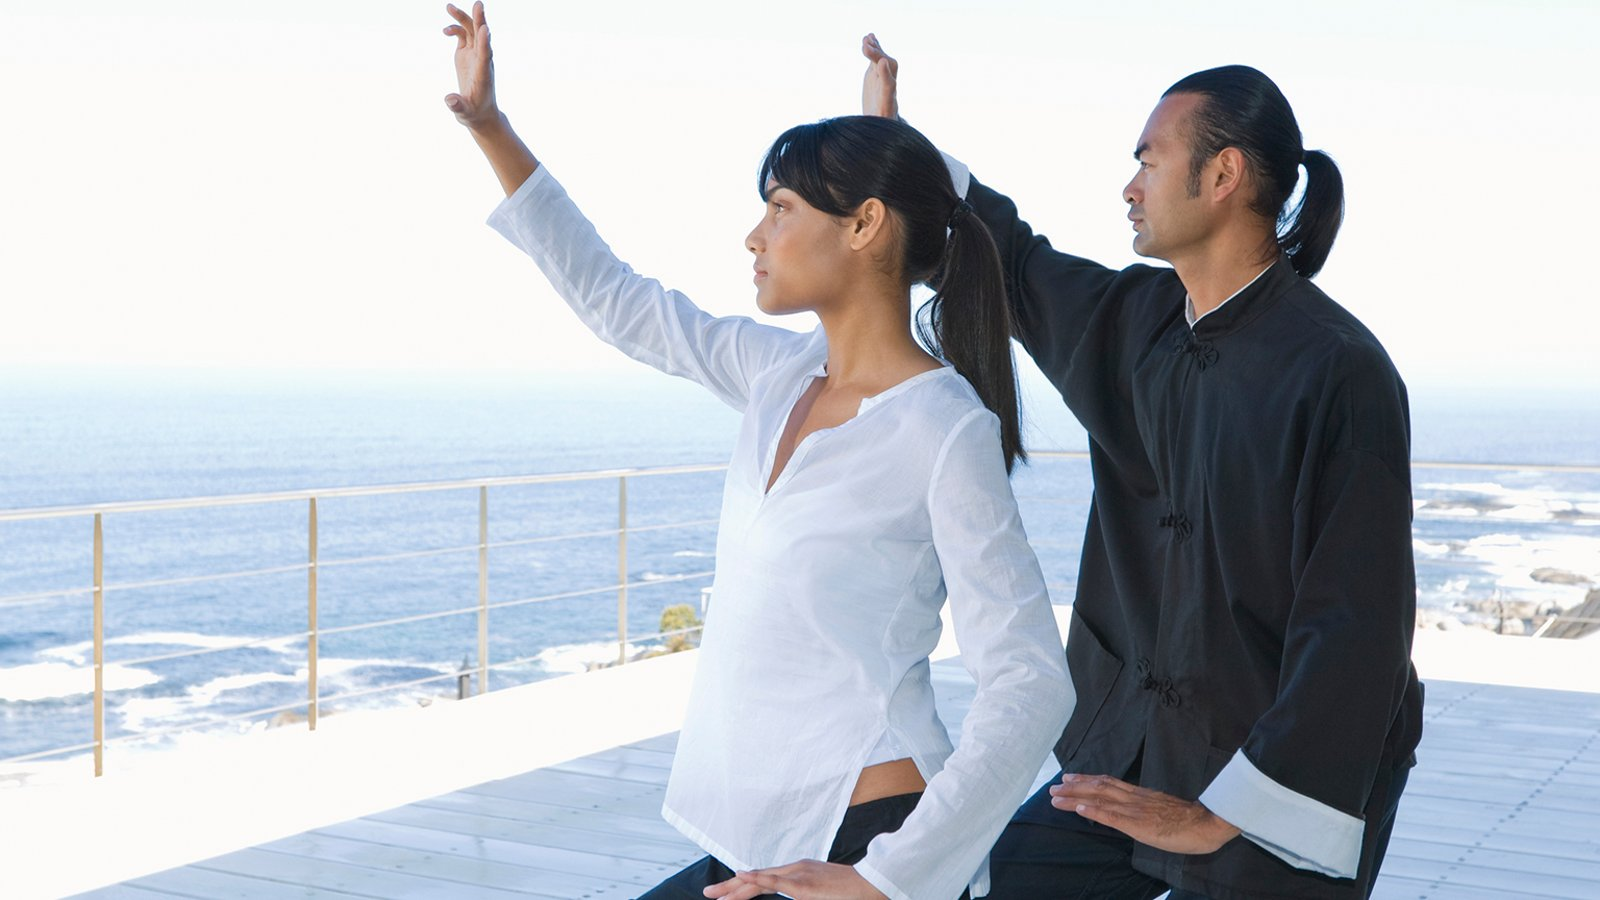 Tai Chi Partnered: From Connect to Merge